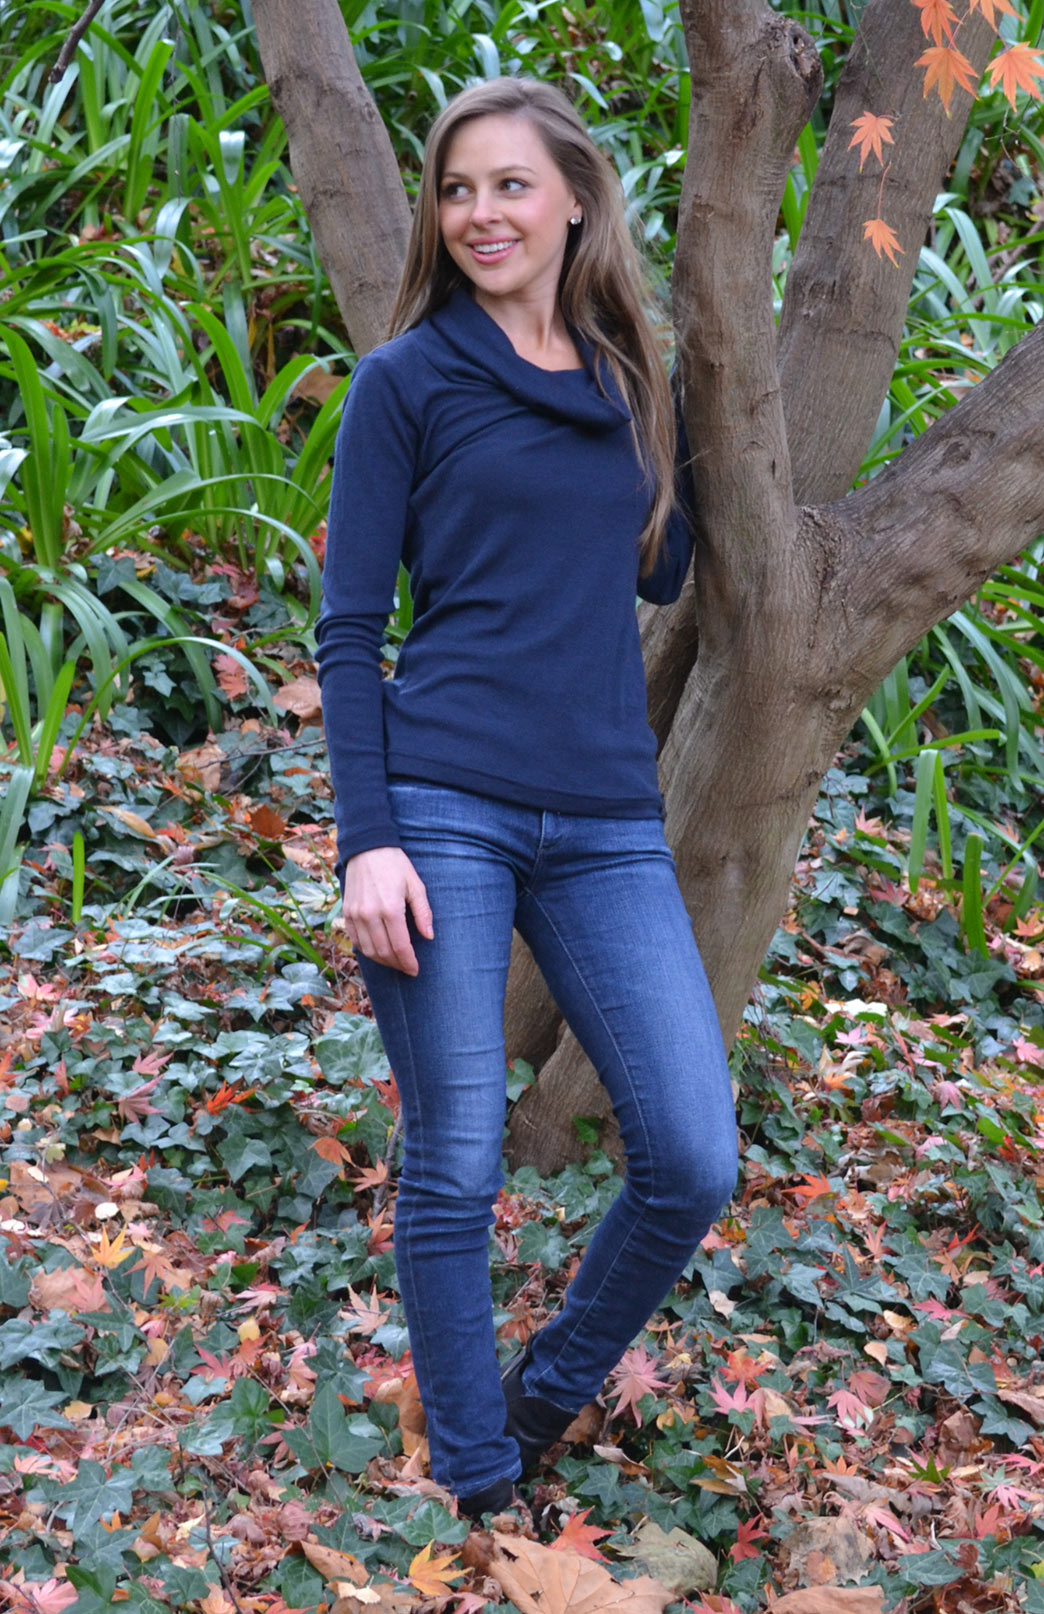 Cowl Neck Top - Long Sleeved - Women's Blue Wool Long Sleeved Cowl Neck Top - Smitten Merino Tasmania Australia